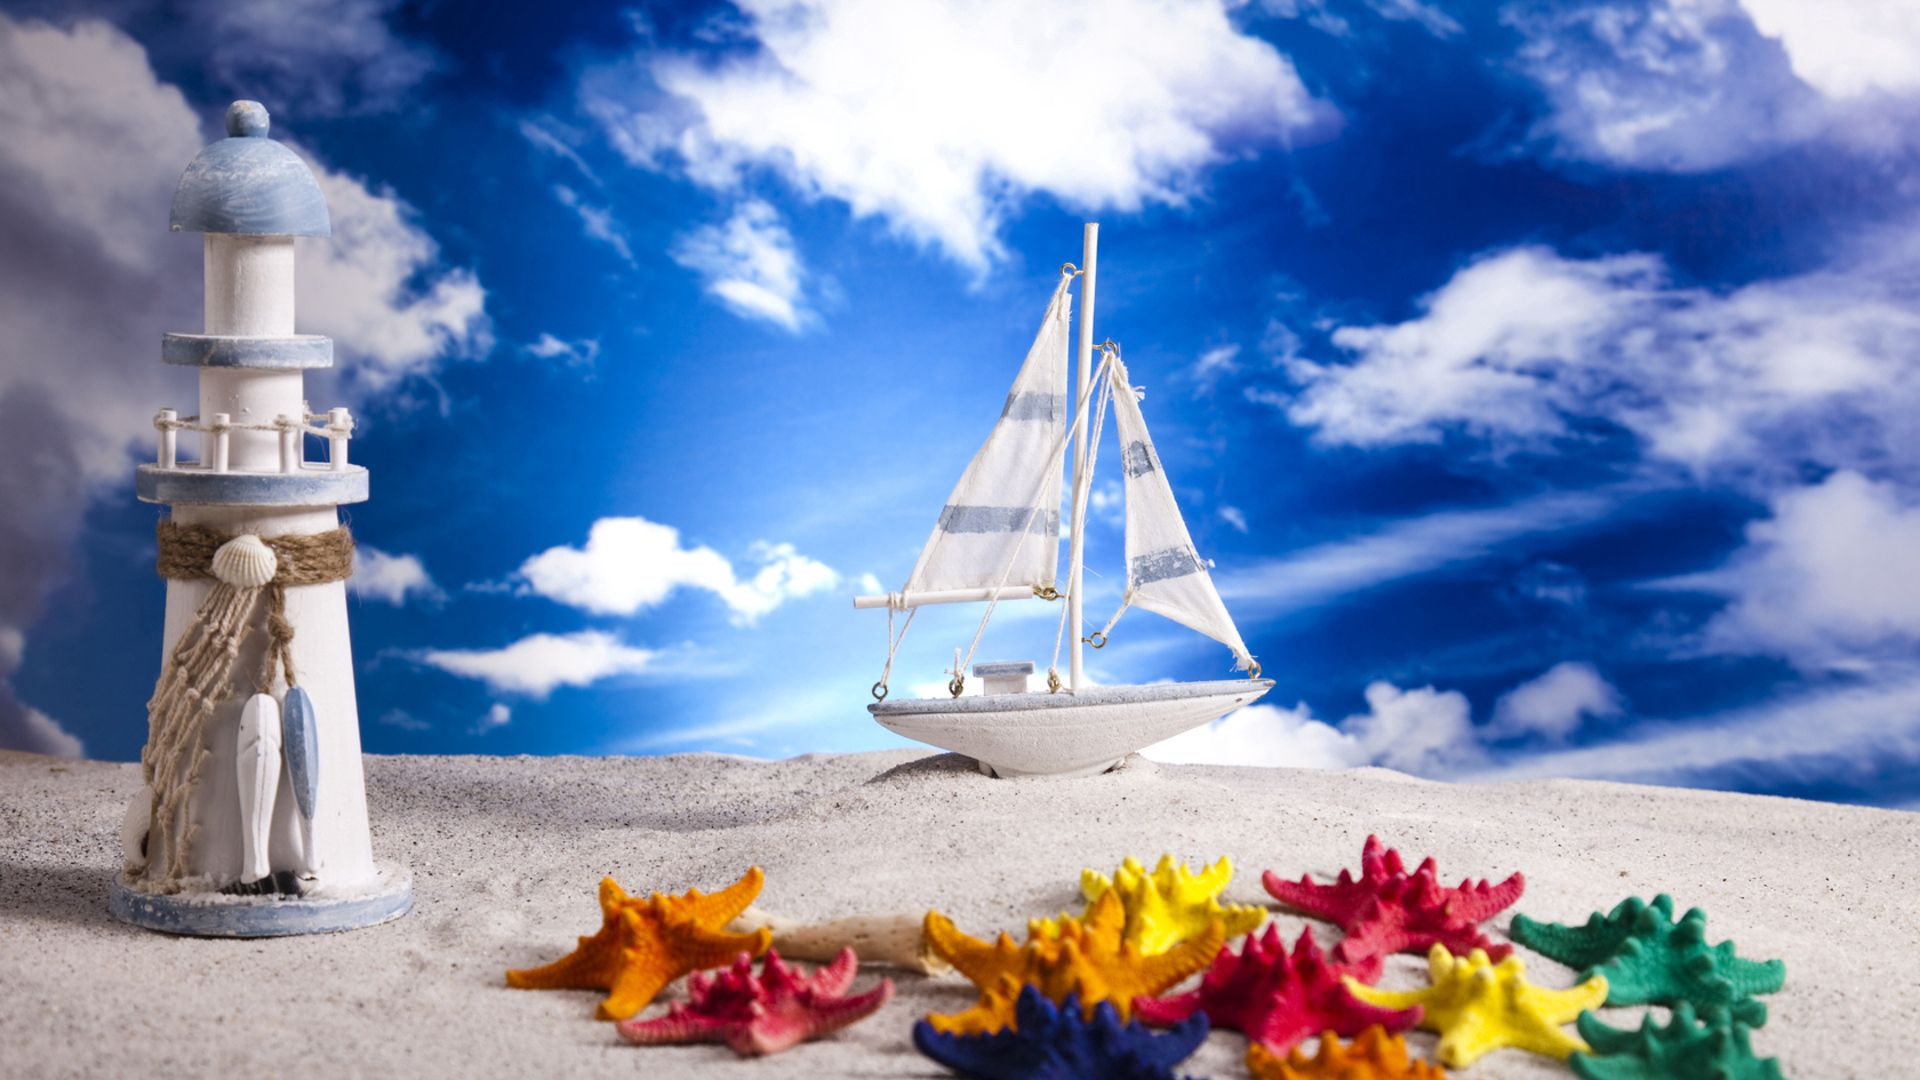 74050 download wallpaper Miscellanea, Miscellaneous, Sand, Layout, Ship, Nautilus, Lighthouse, Sea Stars, Starfish, Sky, Clouds screensavers and pictures for free